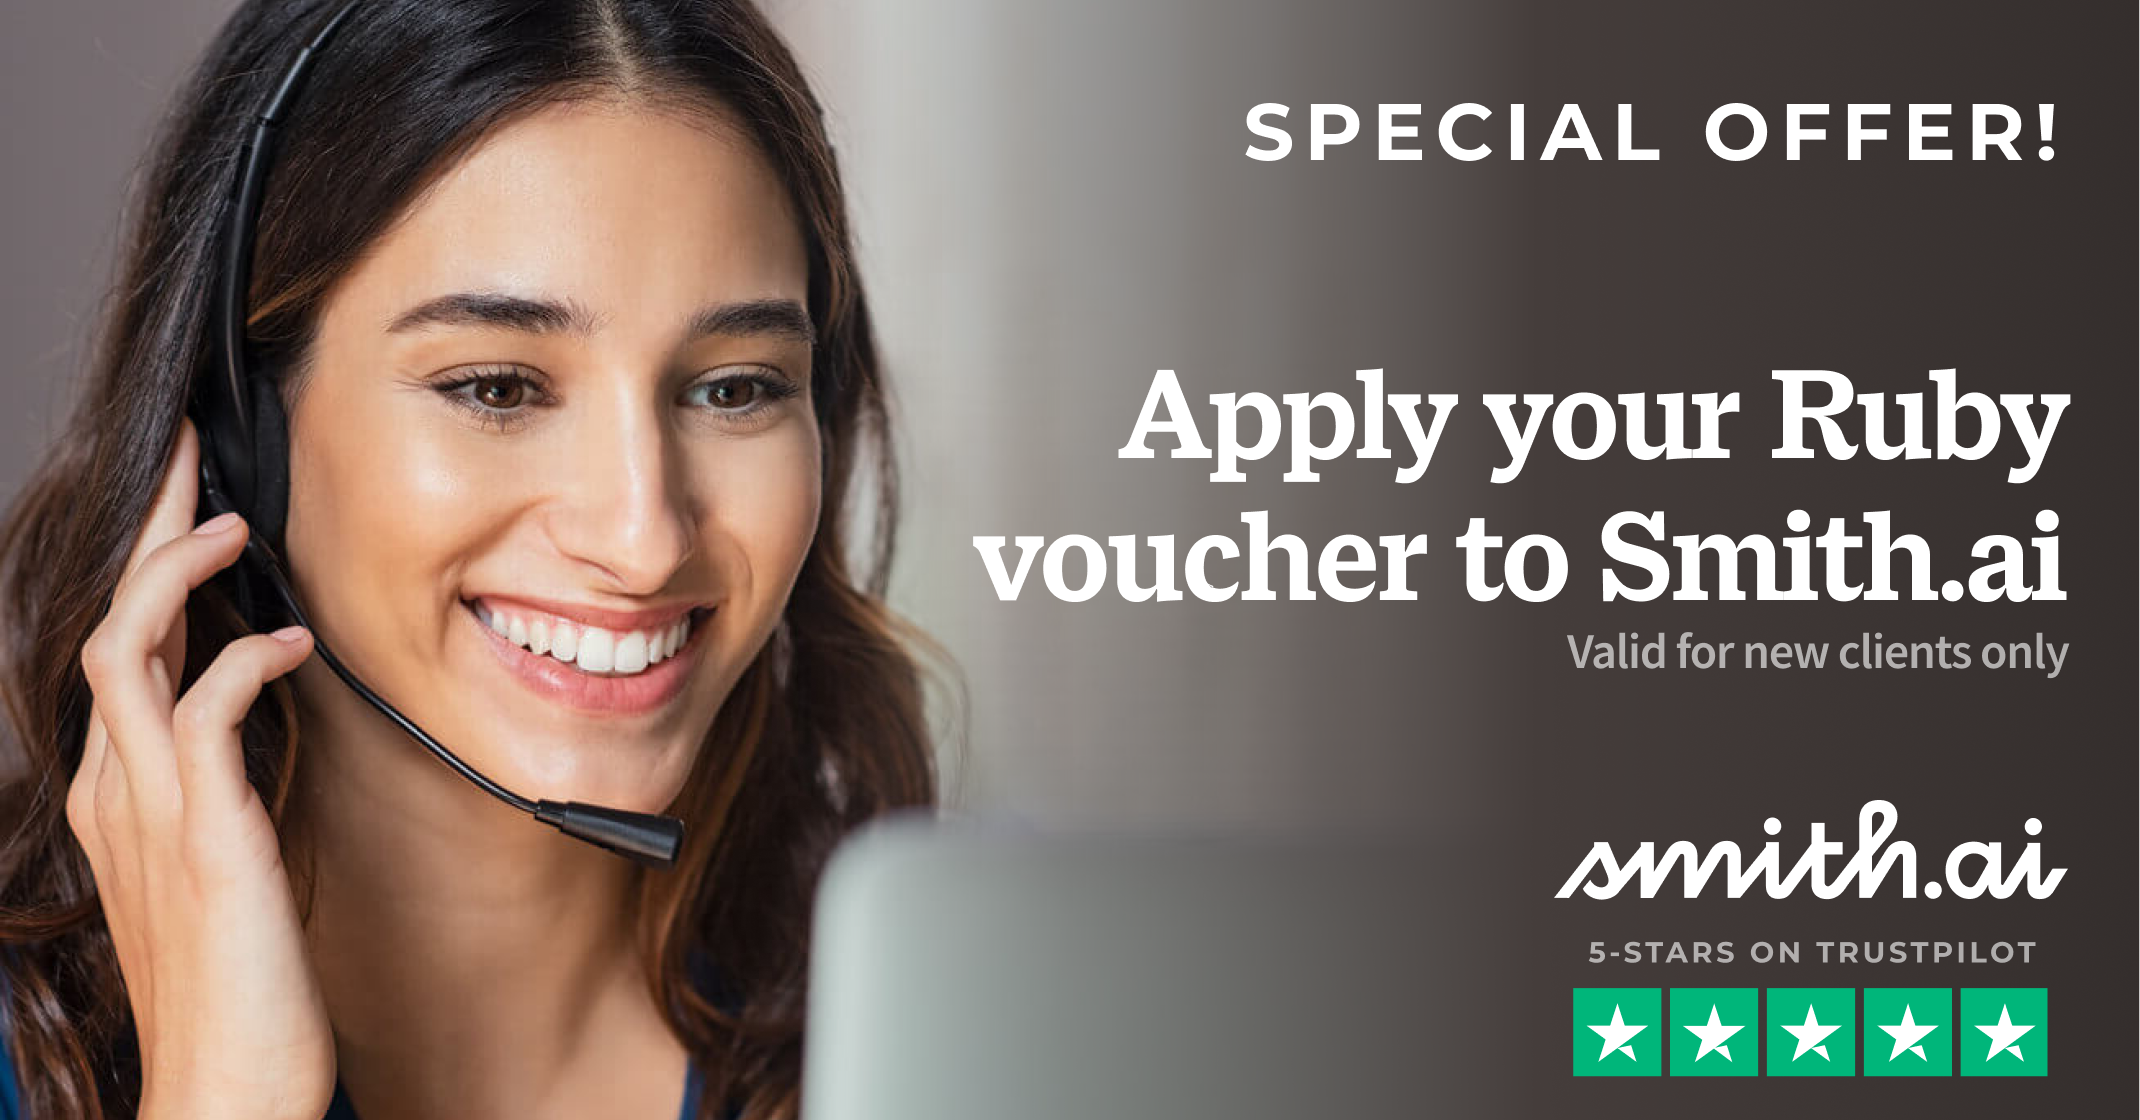 Special Offer: Smith.ai Will Match Your Voucher from the Ruby Receptionists Class Action Settlement